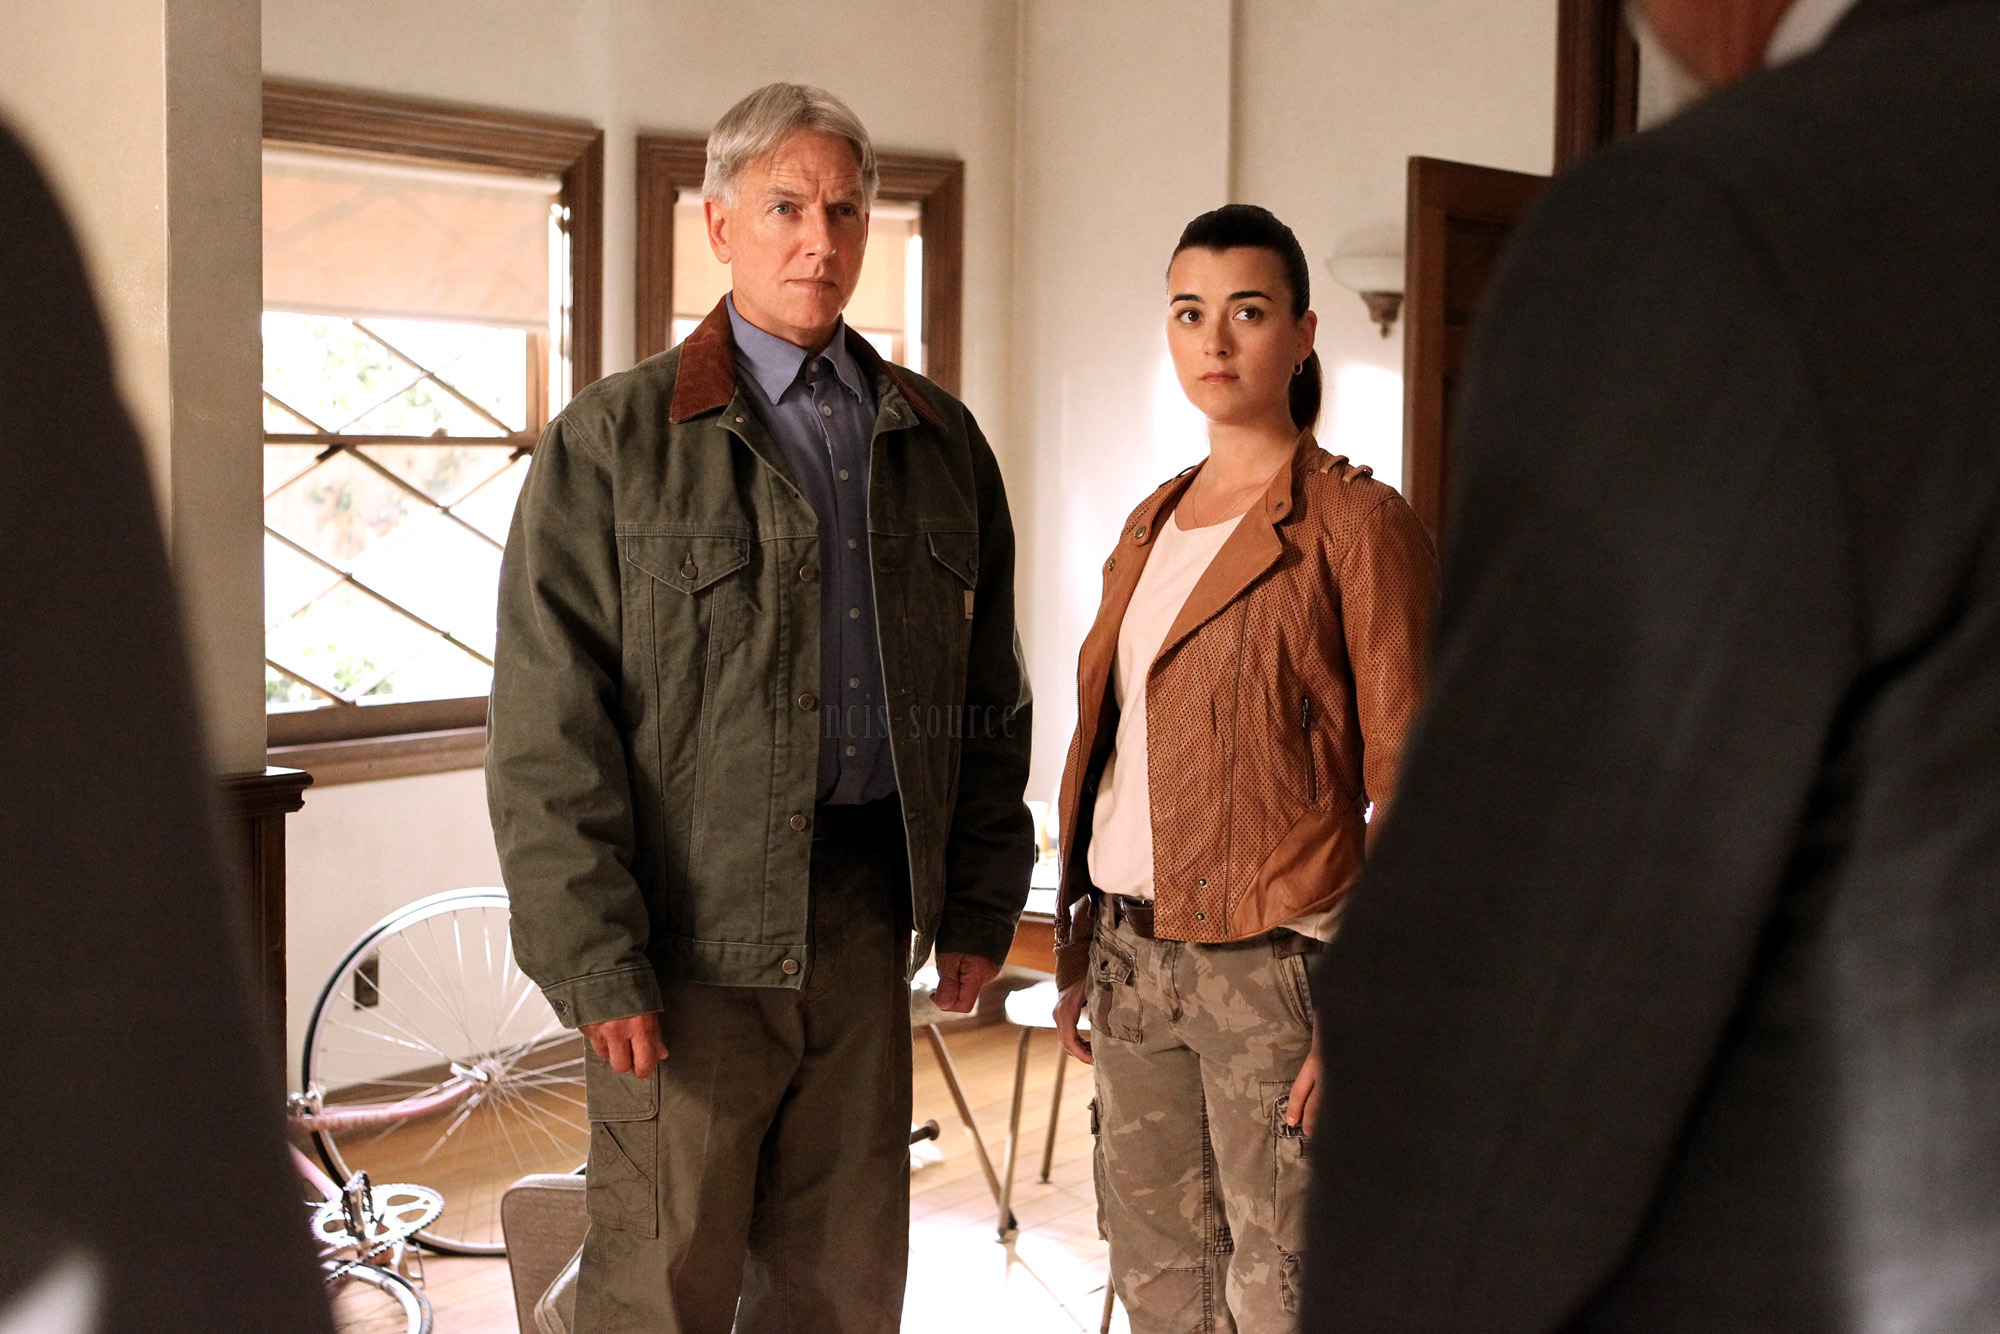 de-Pablo-Ziva-David-NCIS-10x24-Damned-If-You-Do-episode-stills-cote-de